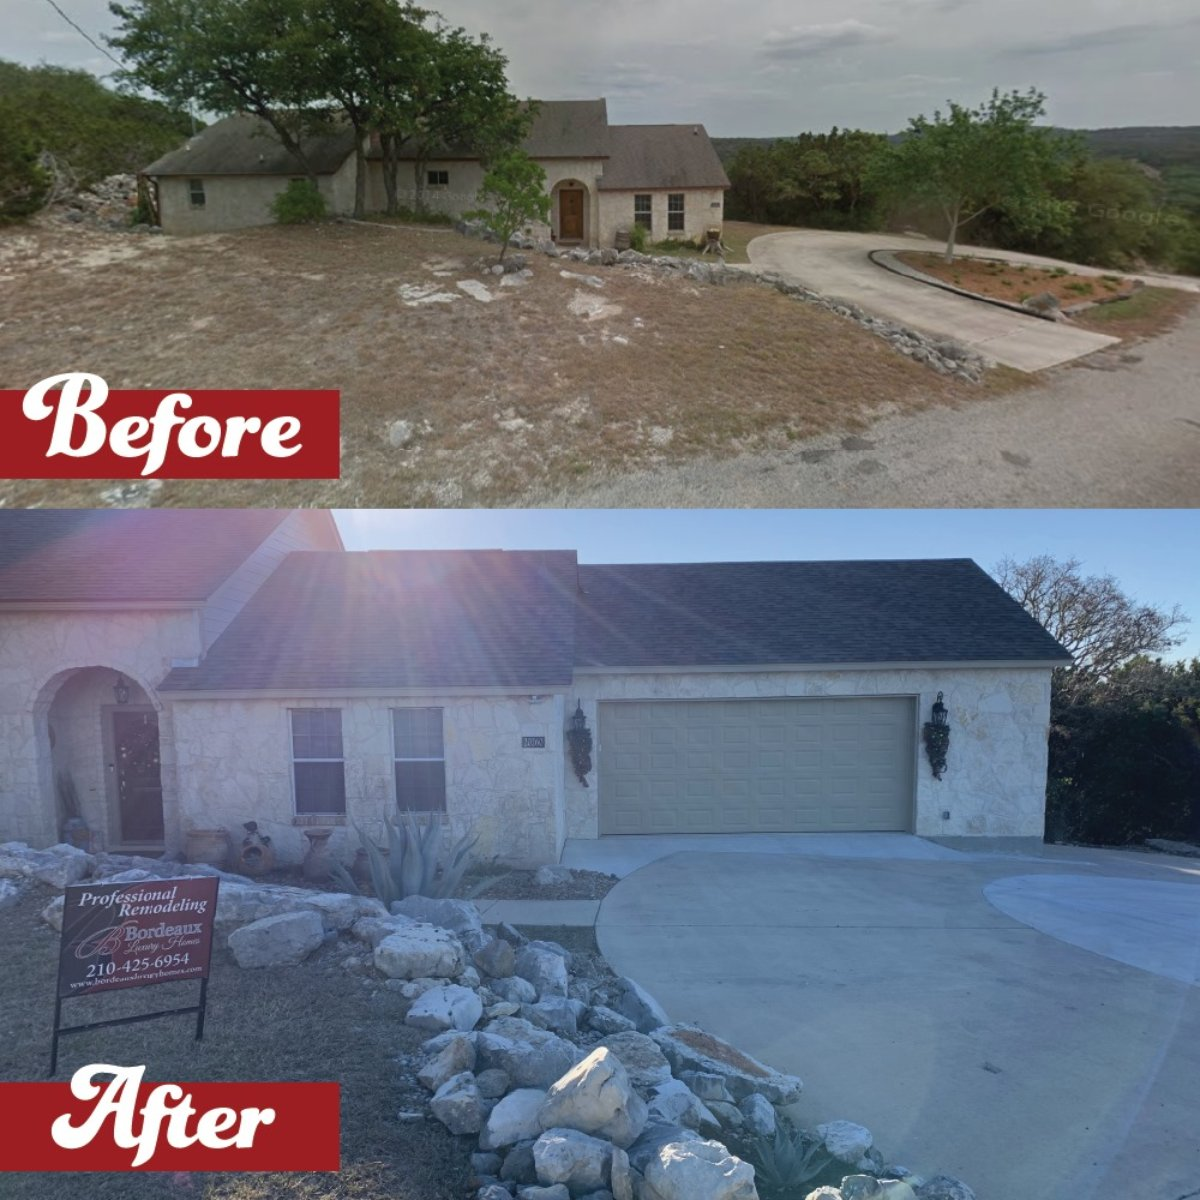 Our projects are designed and built to match your home and preferences. Call us to start your home project design! #TransformationTuesday